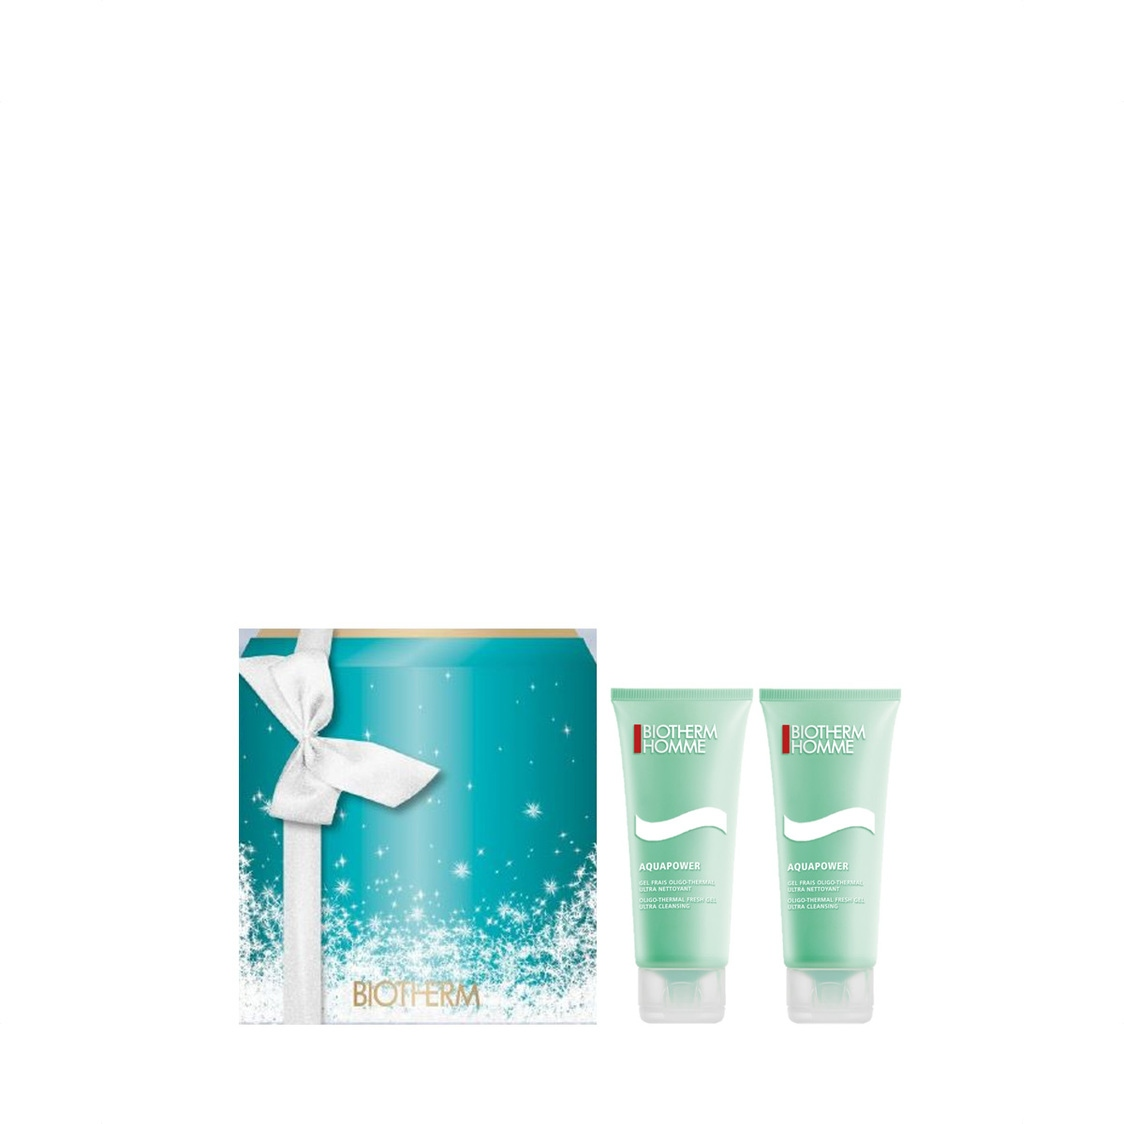 Aquapower Twin Cleanser Pack